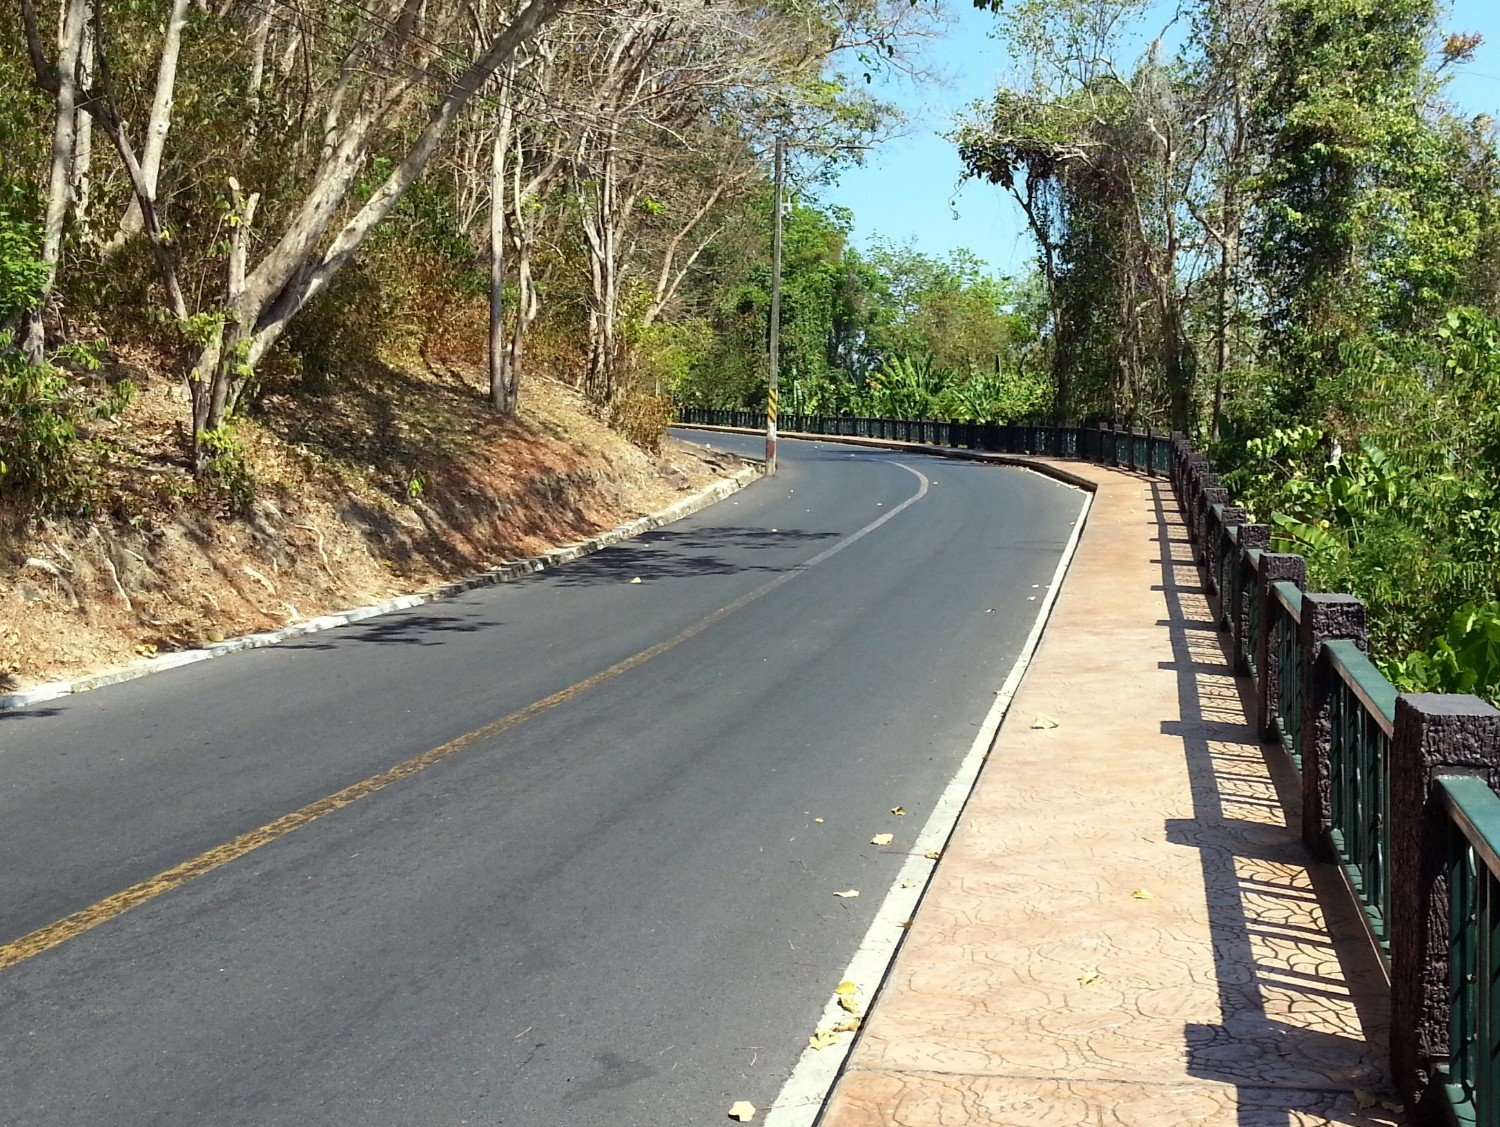 'thanon' is the Thai word for road